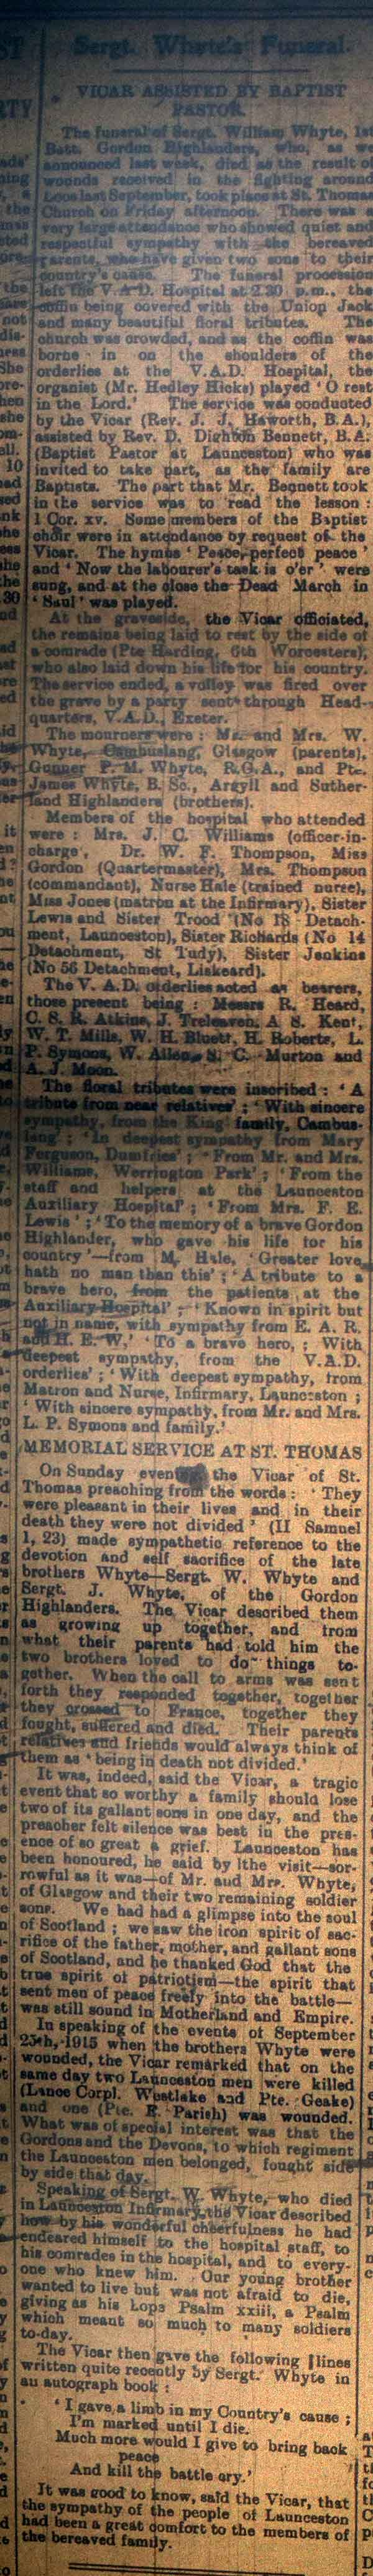 Sergeant William Whyte funeral April 1916